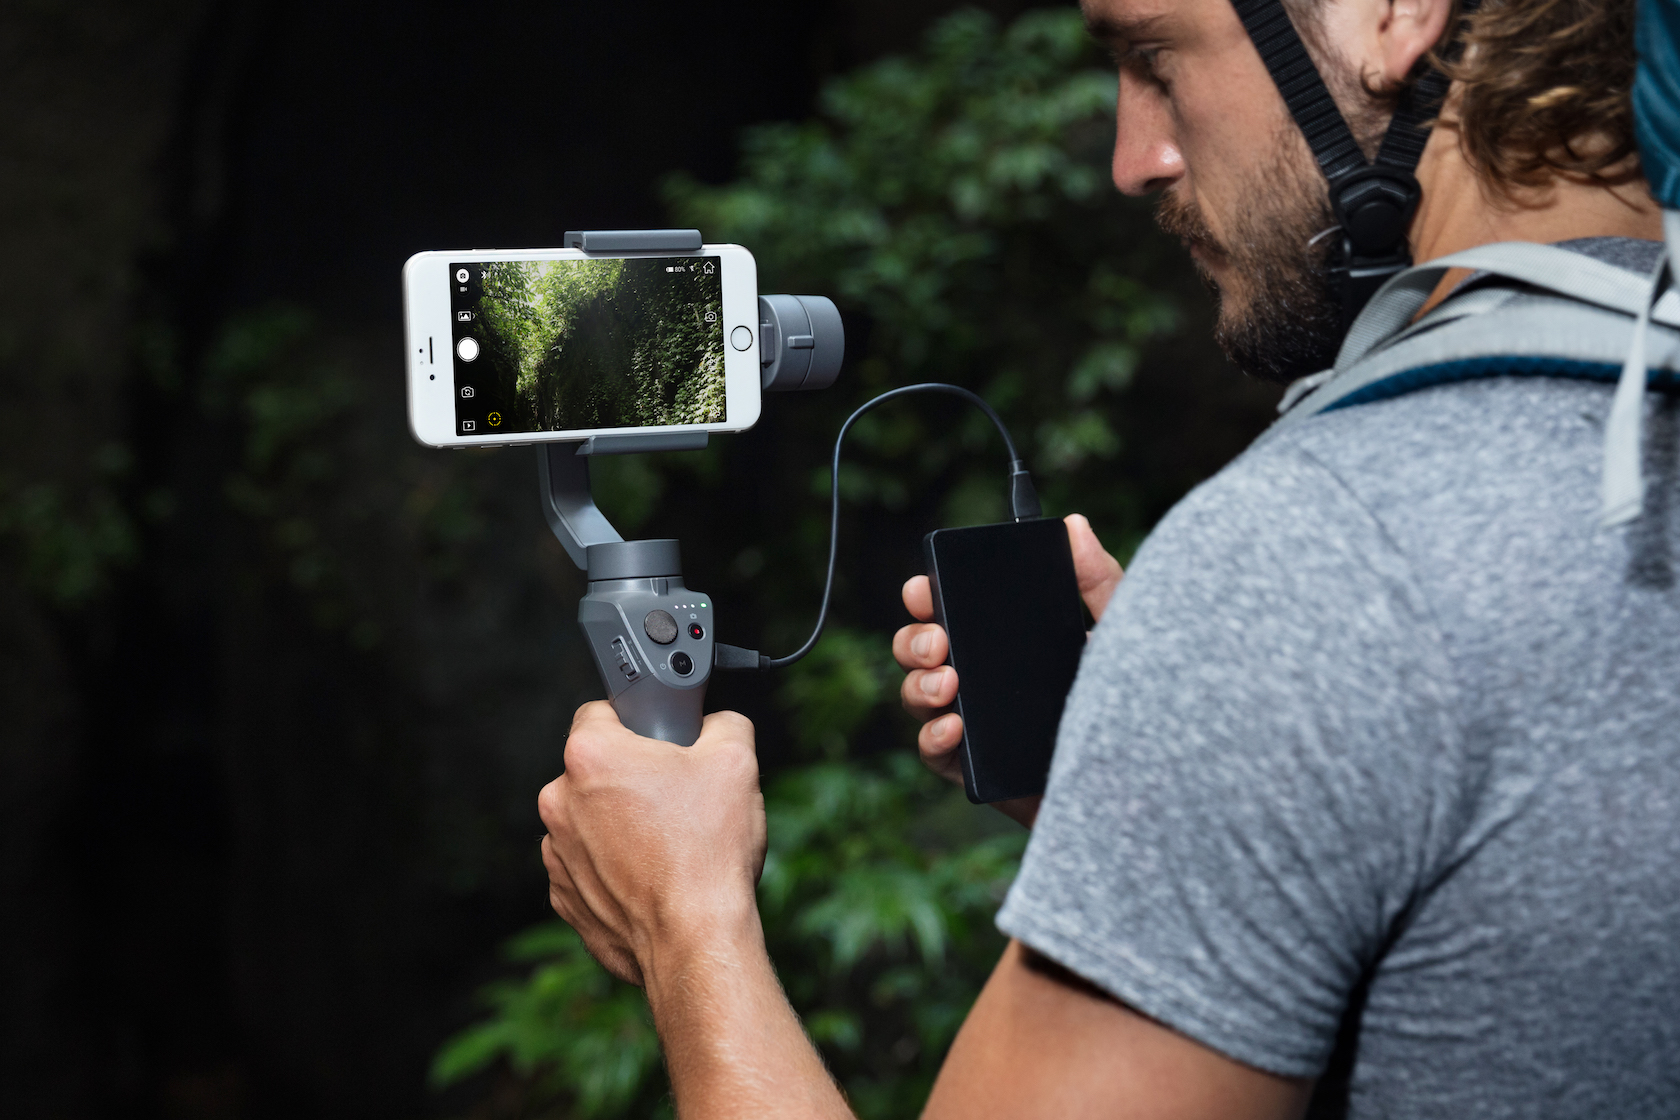 DJI-Osmo-Mobile-2-Lifestyle-20